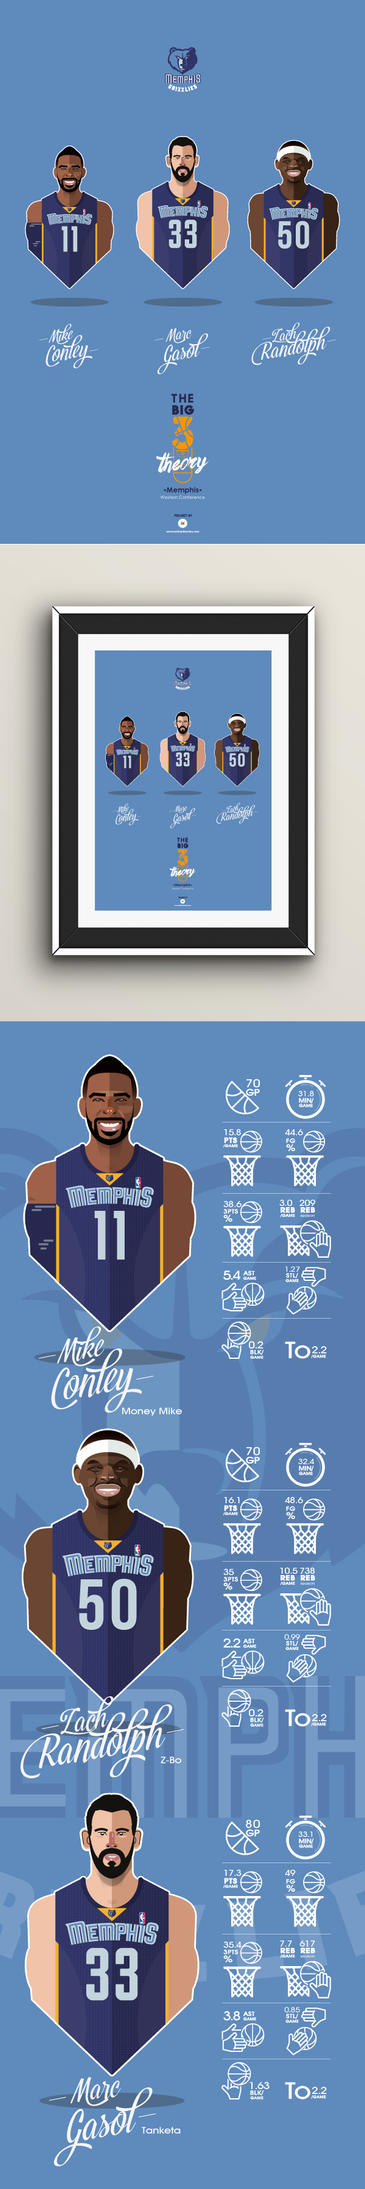 MEMPHIS GRIZZLIES BIGMEN by 2m-at-work